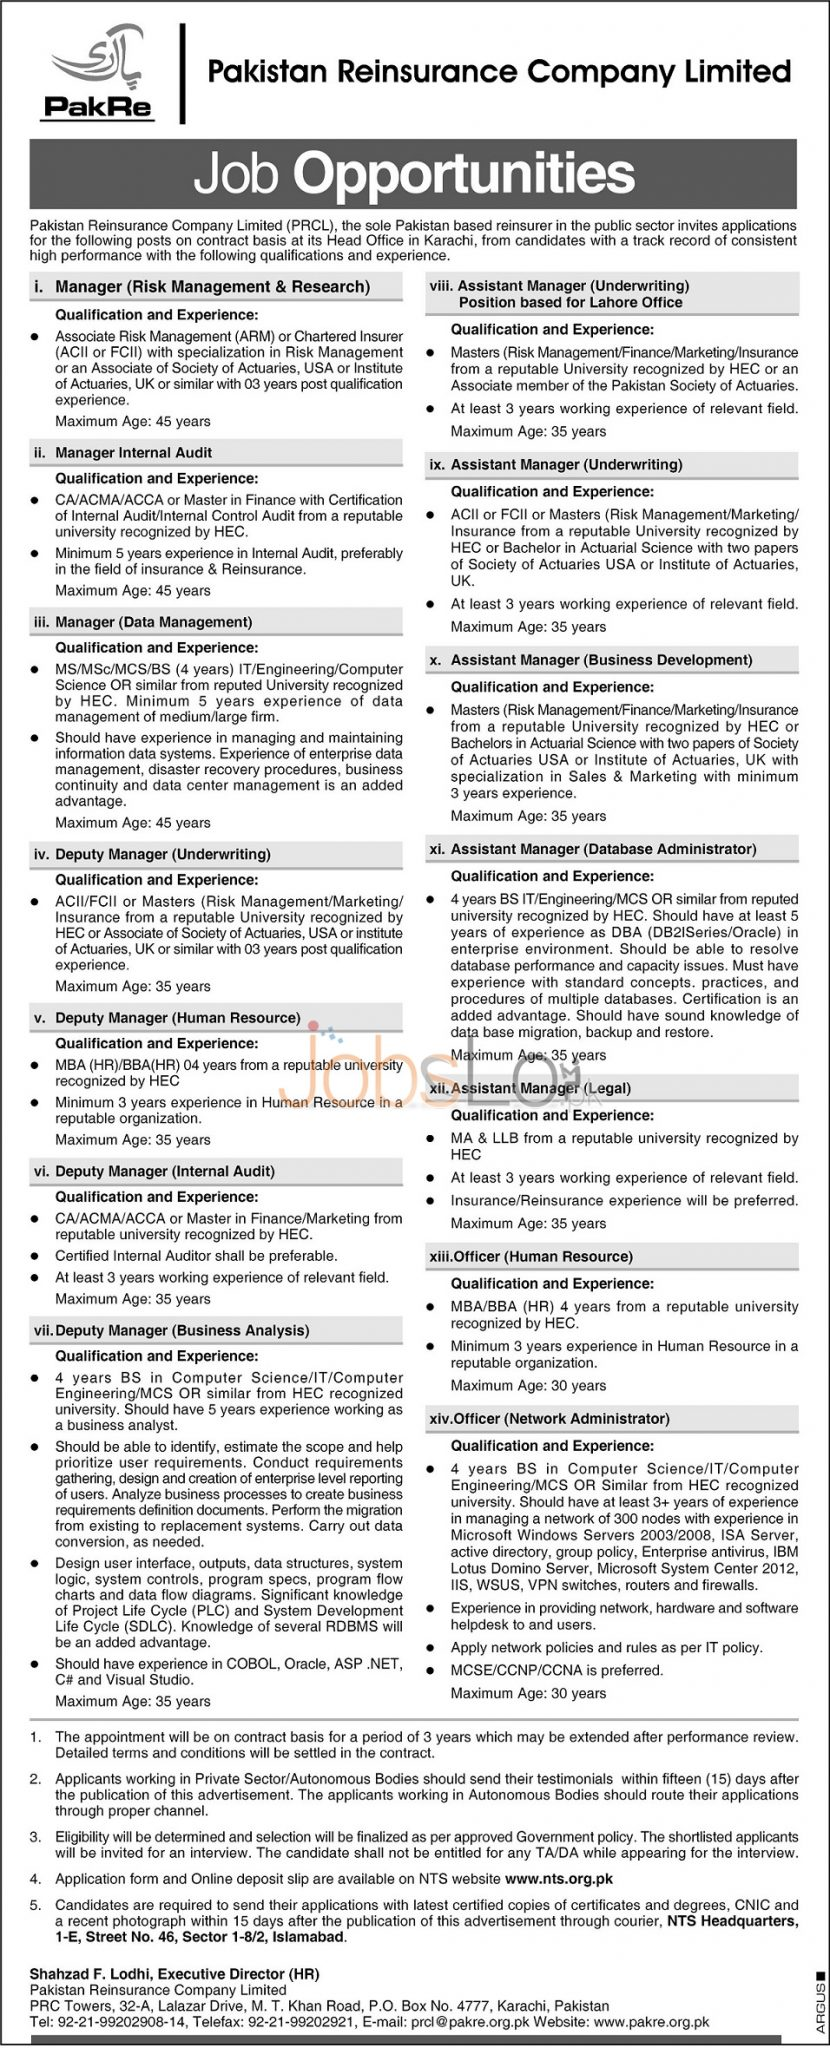 Pakistan Reinsurance Company Ltd Jobs